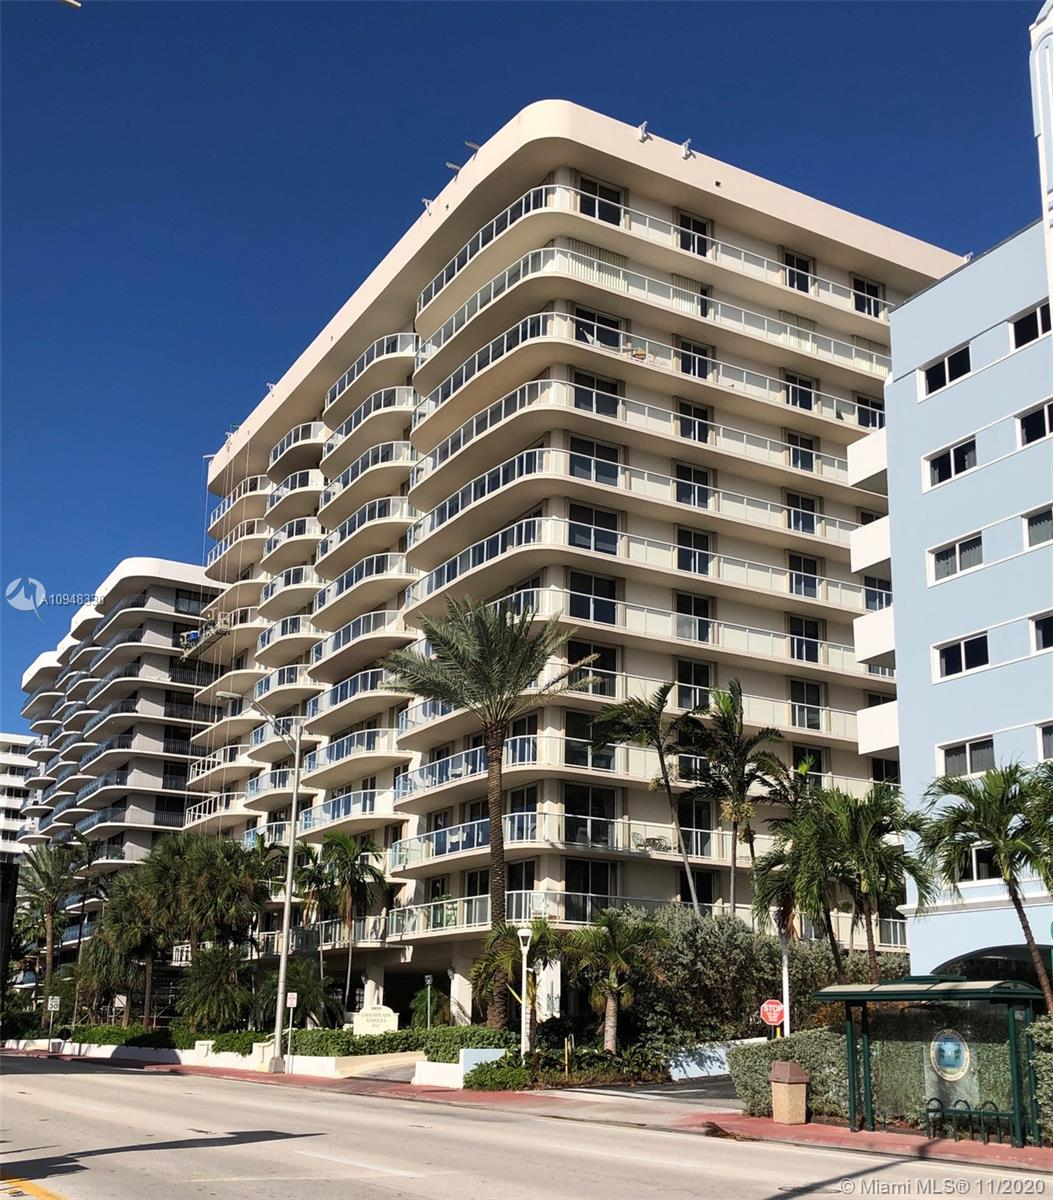 Champlain Towers East #8F - 8855 Collins Ave #8F, Surfside, FL 33154